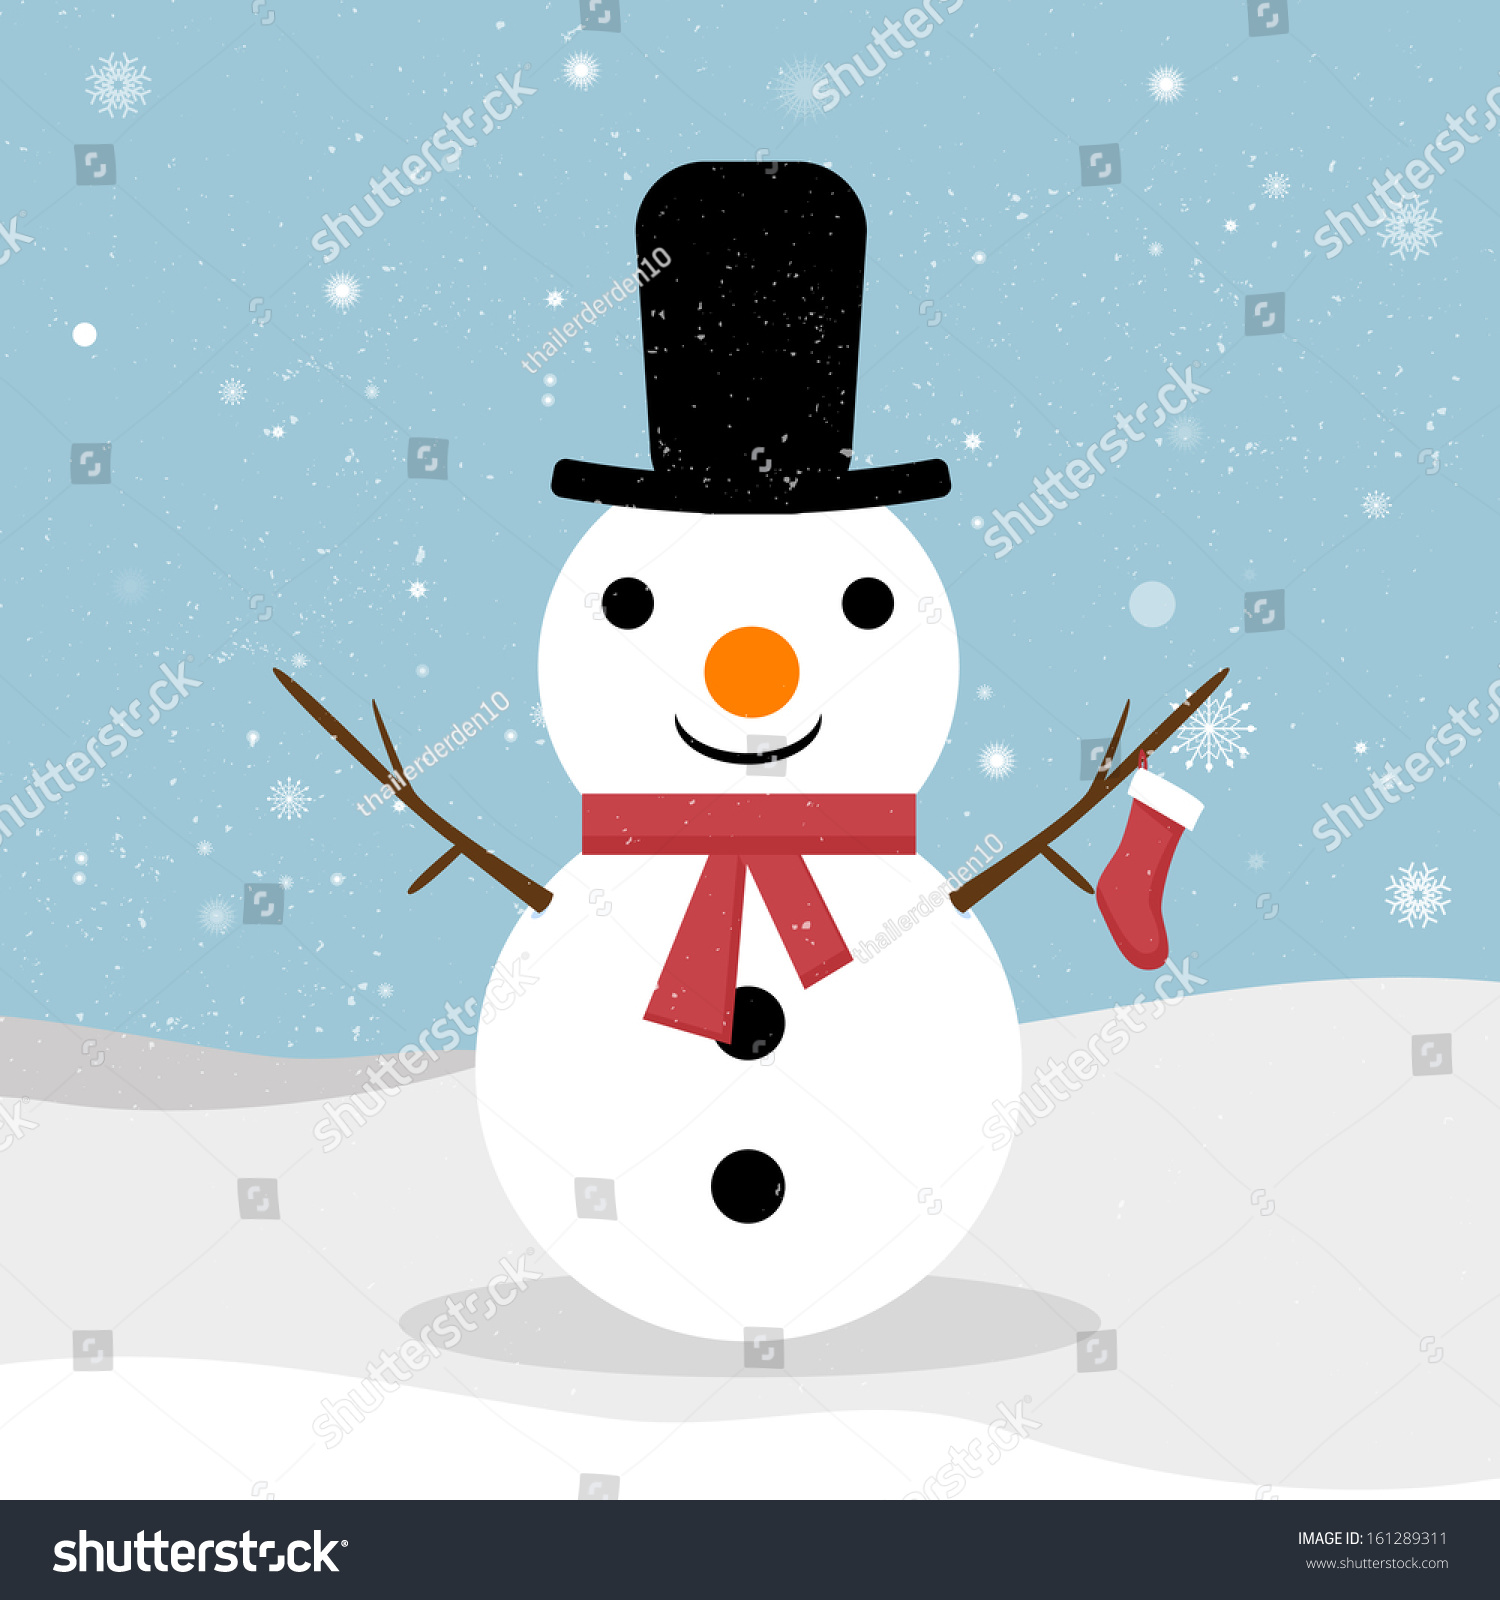 snowman vector snowman snowman greeting cute christmas greeting card with snowman greeting